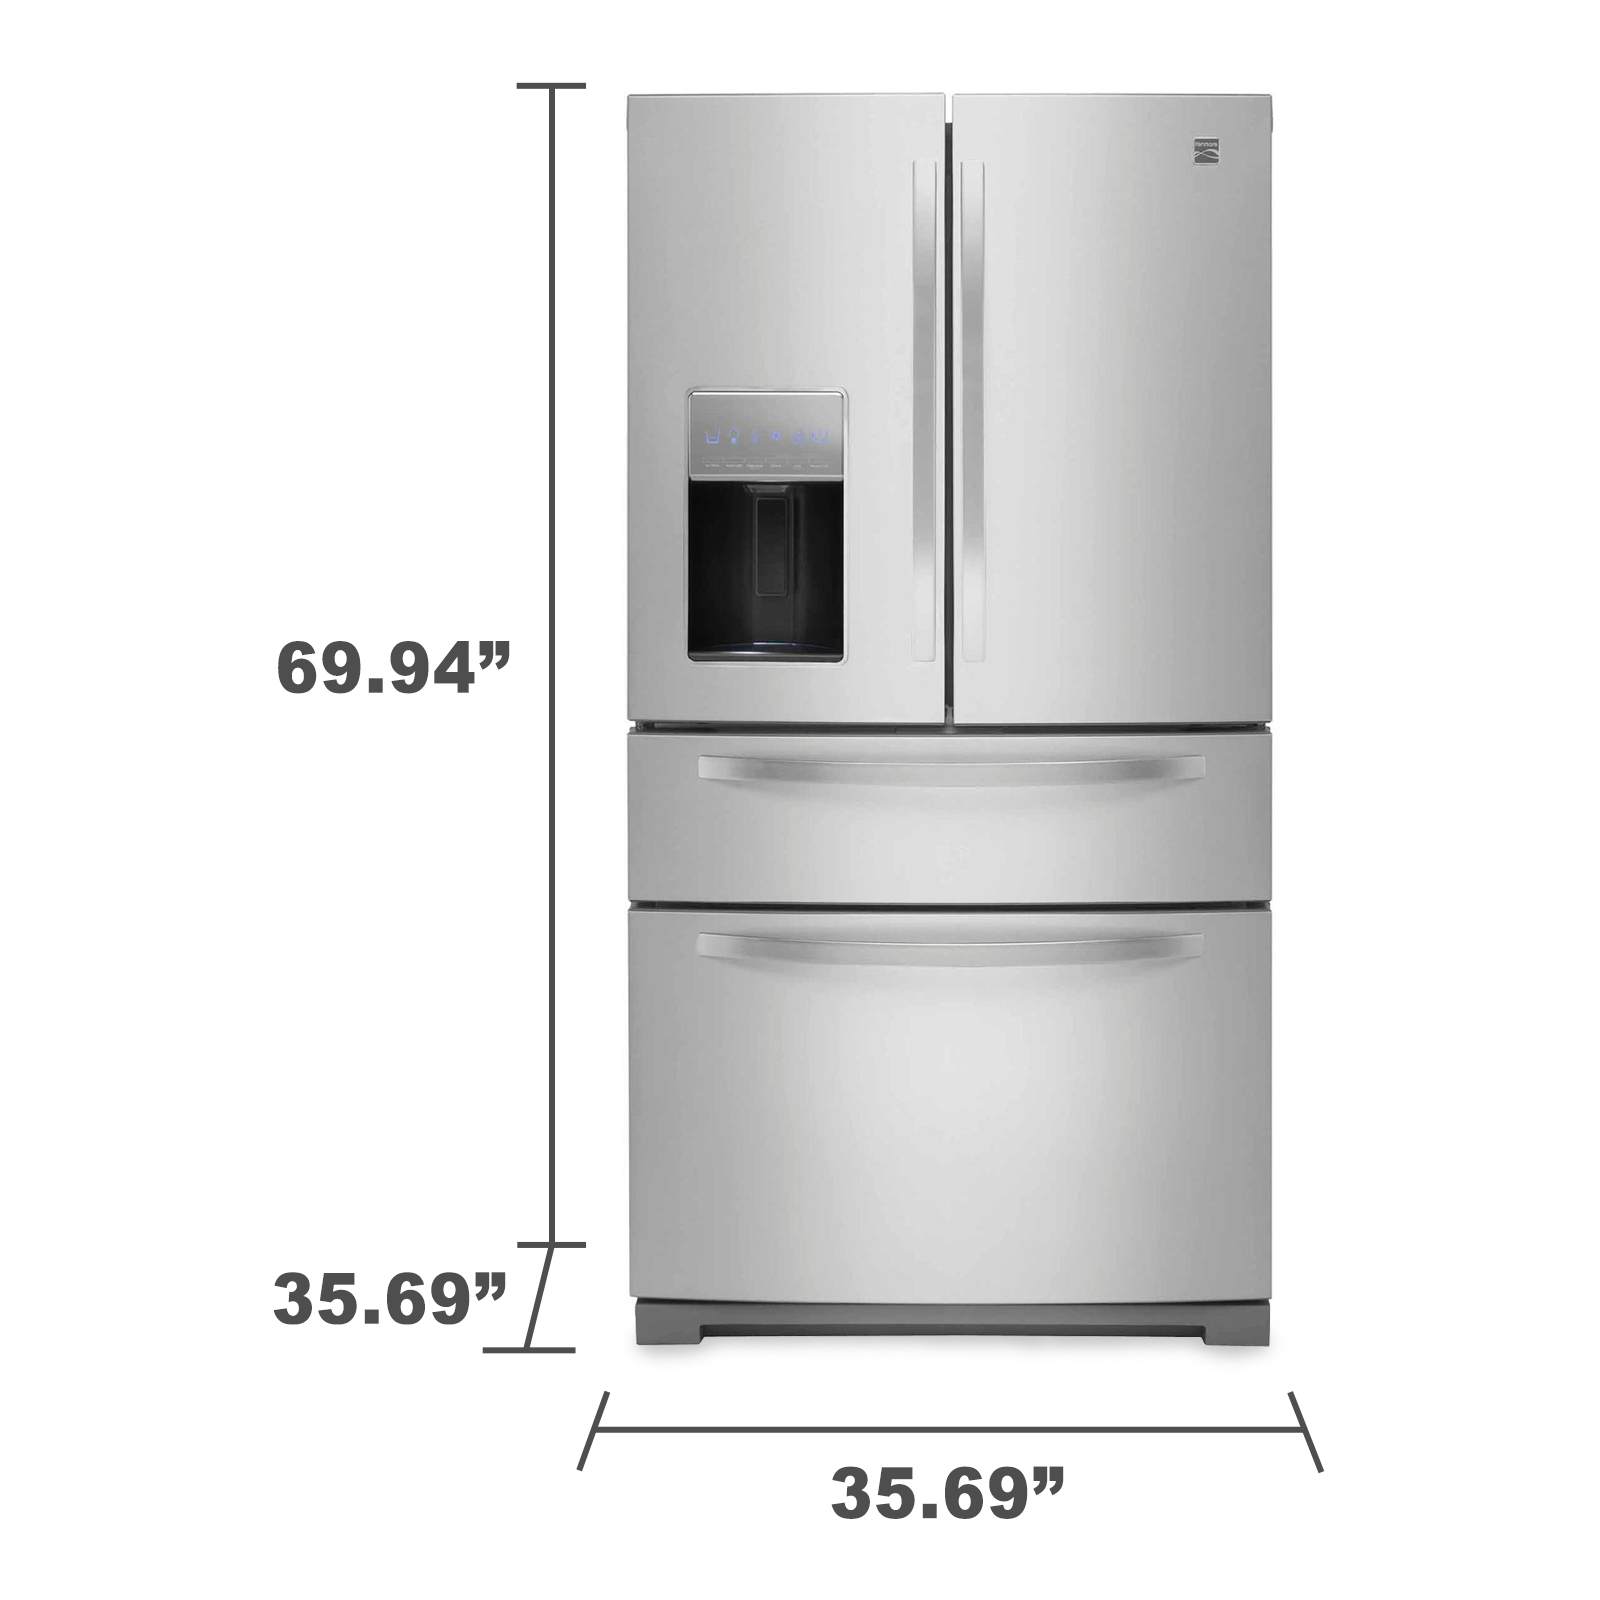 Kenmore 72383 26.2 cu. ft. French Door Refrigerator w/ Fresh Storage Drawer –Stainless Steel